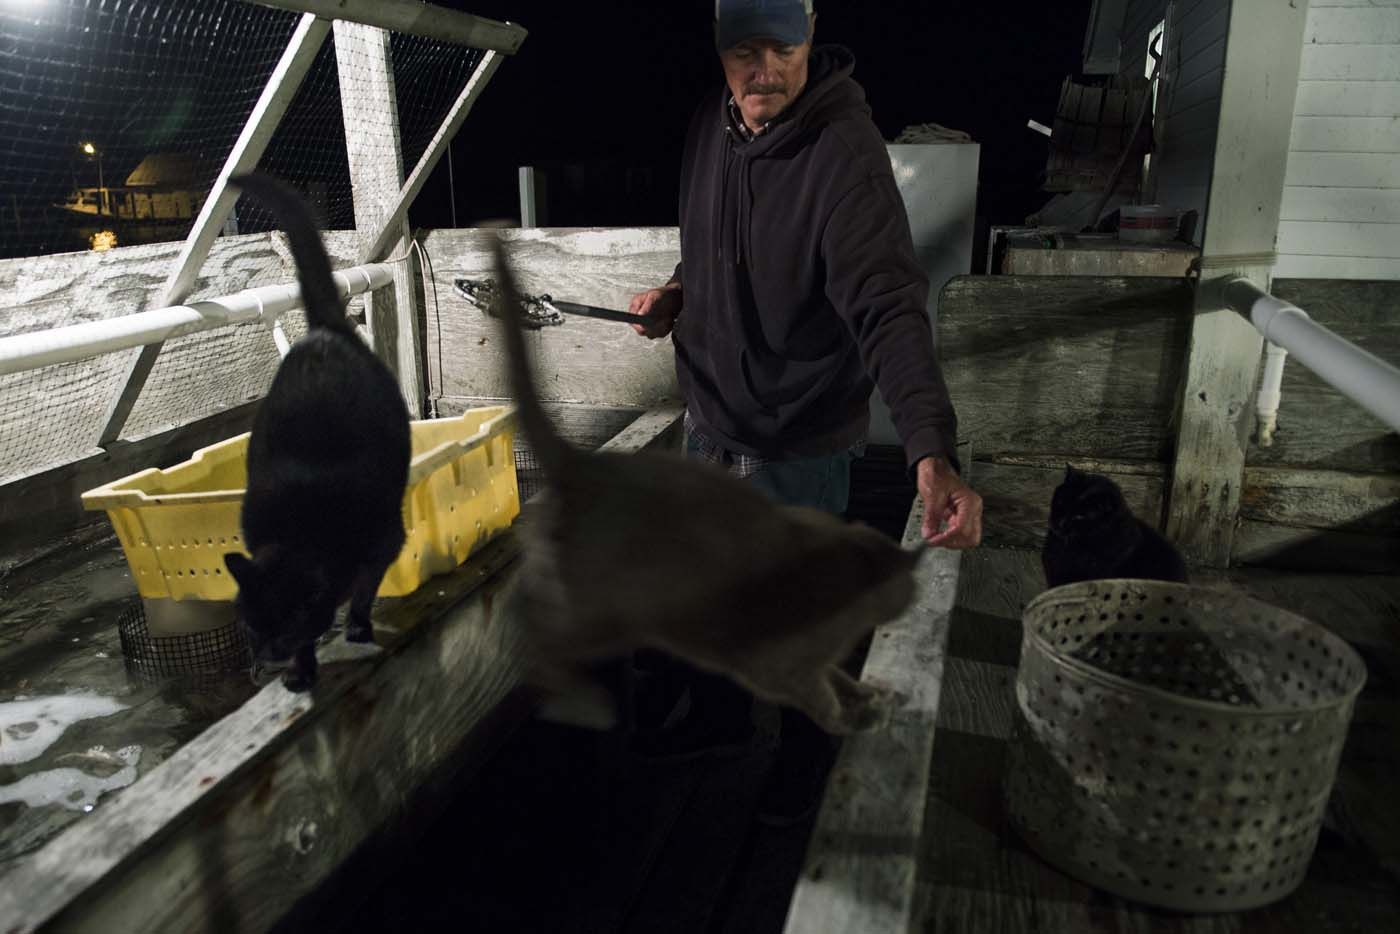 Mayor and waterman James Eskridge feeds his cats as he checks on his soft shell crabs at his shanty during the early morning in Tangier, Virginia, May 16, 2017, where climate change and rising sea levels threaten the inhabitants of the slowly sinking island. Now measuring 1.2 square miles, Tangier Island has lost two-thirds of its landmass since 1850. If nothing is done to stop the erosion, it may disappear completely in the next 40 years. / AFP PHOTO / JIM WATSON